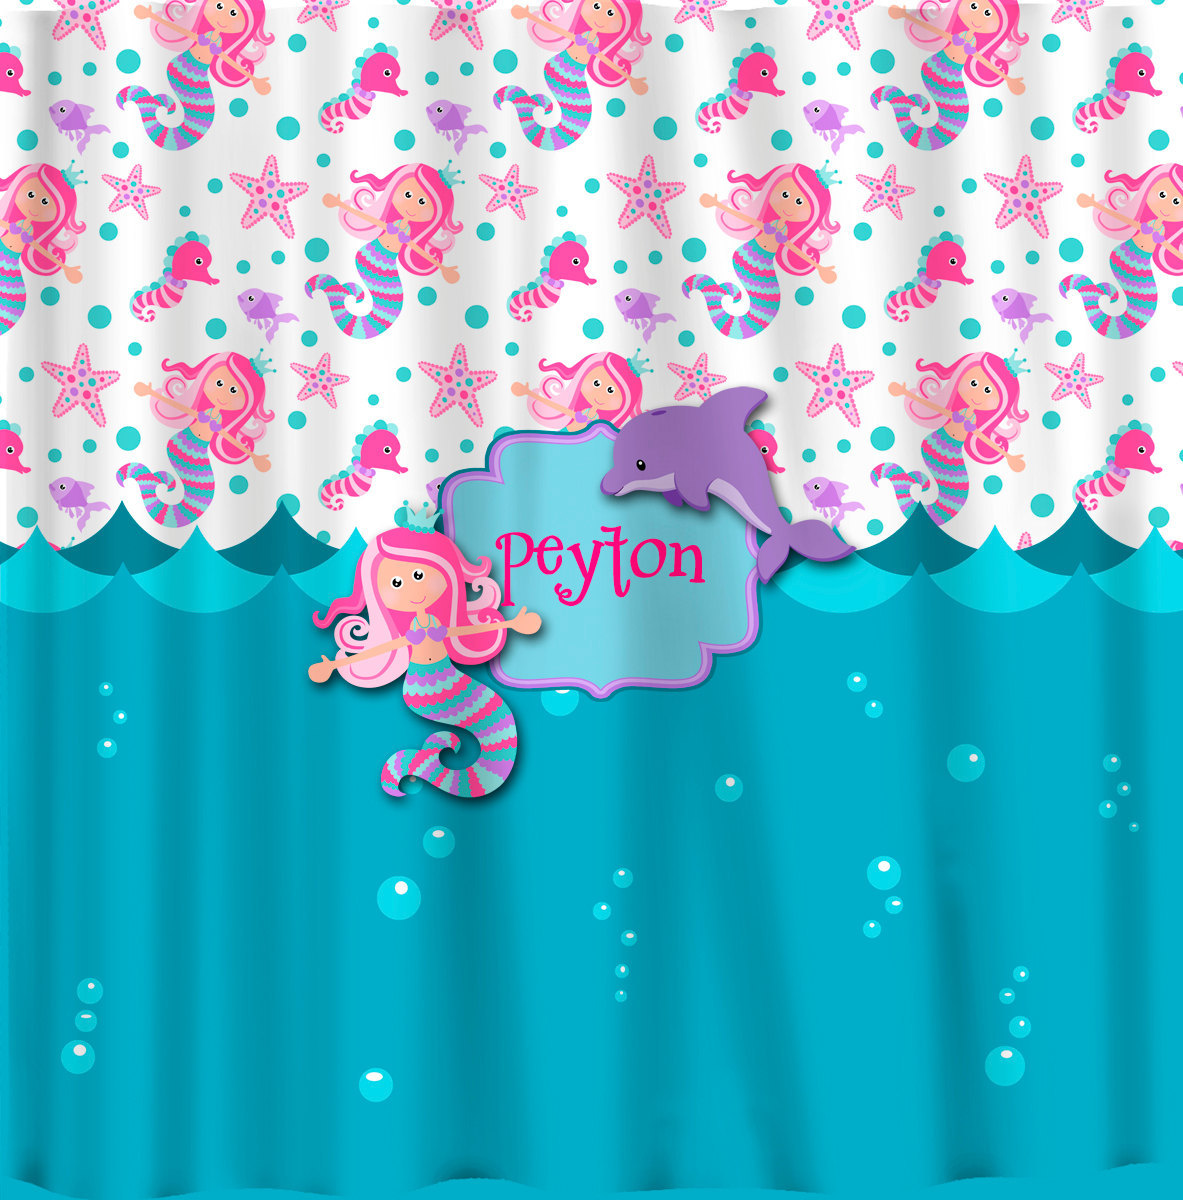 Personalized Custom Mermaid Shower Curtain -Turquoise, Pink, Purple -your name a